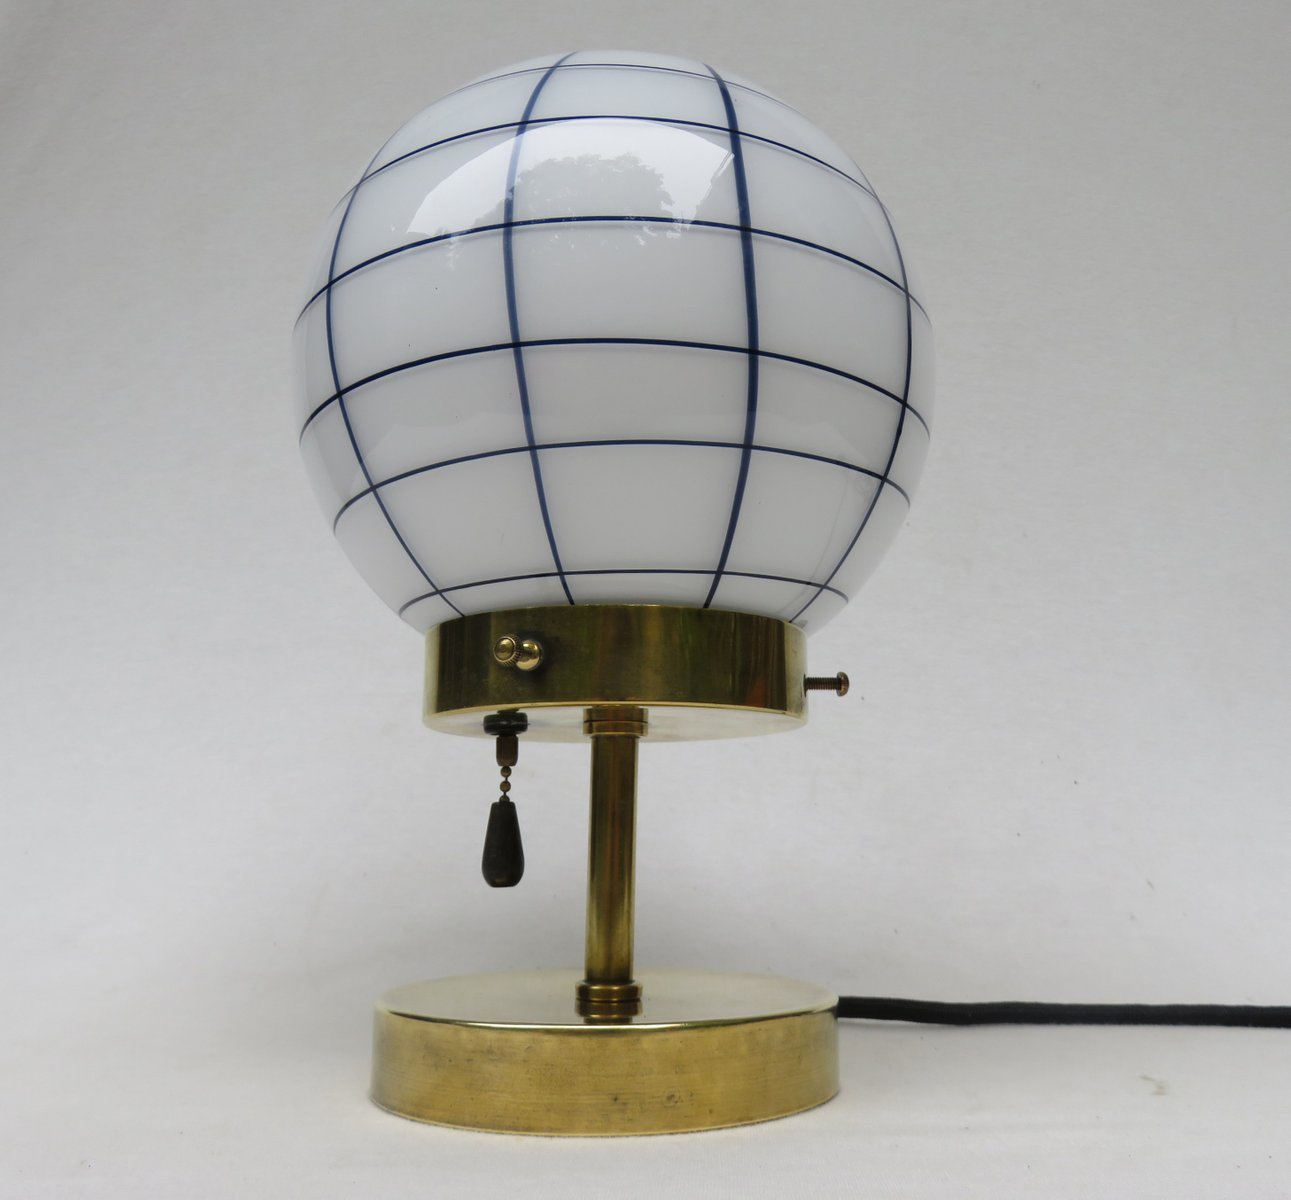 Vintage small art deco brass table lamp for sale at pamono vintage small art deco brass table lamp aloadofball Choice Image